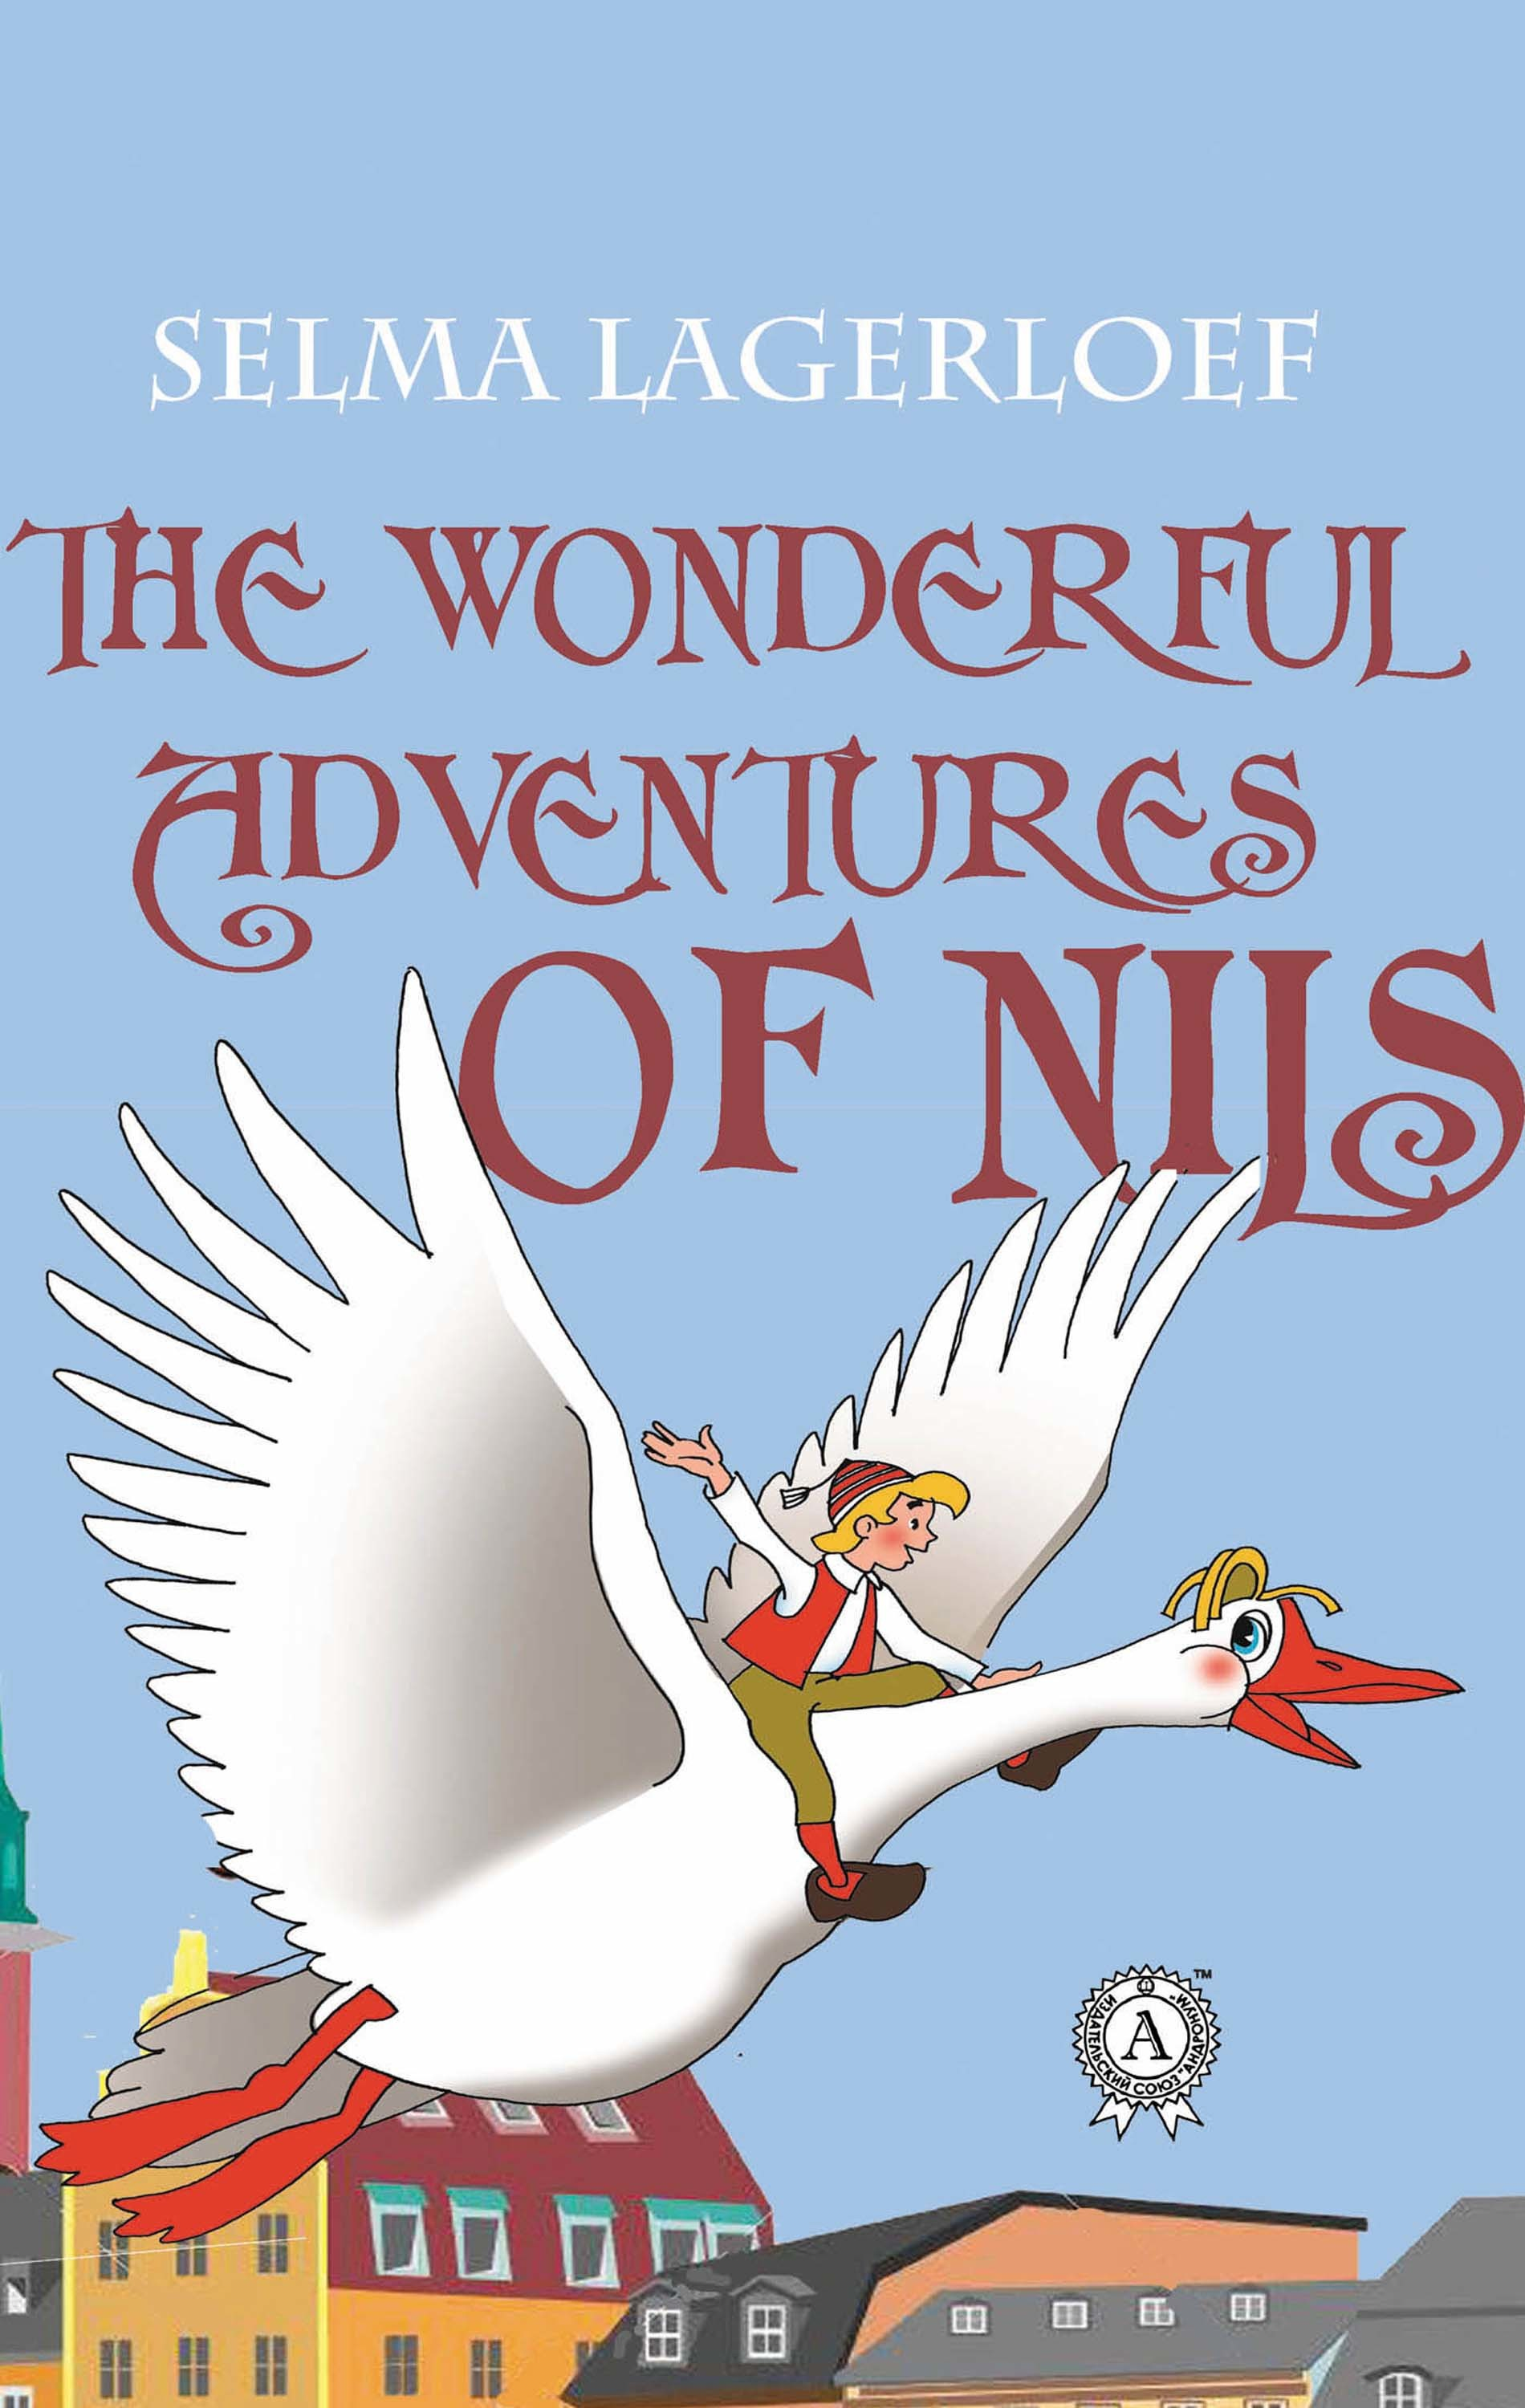 Selma Lagerloef The Wonderful Adventures of Nils